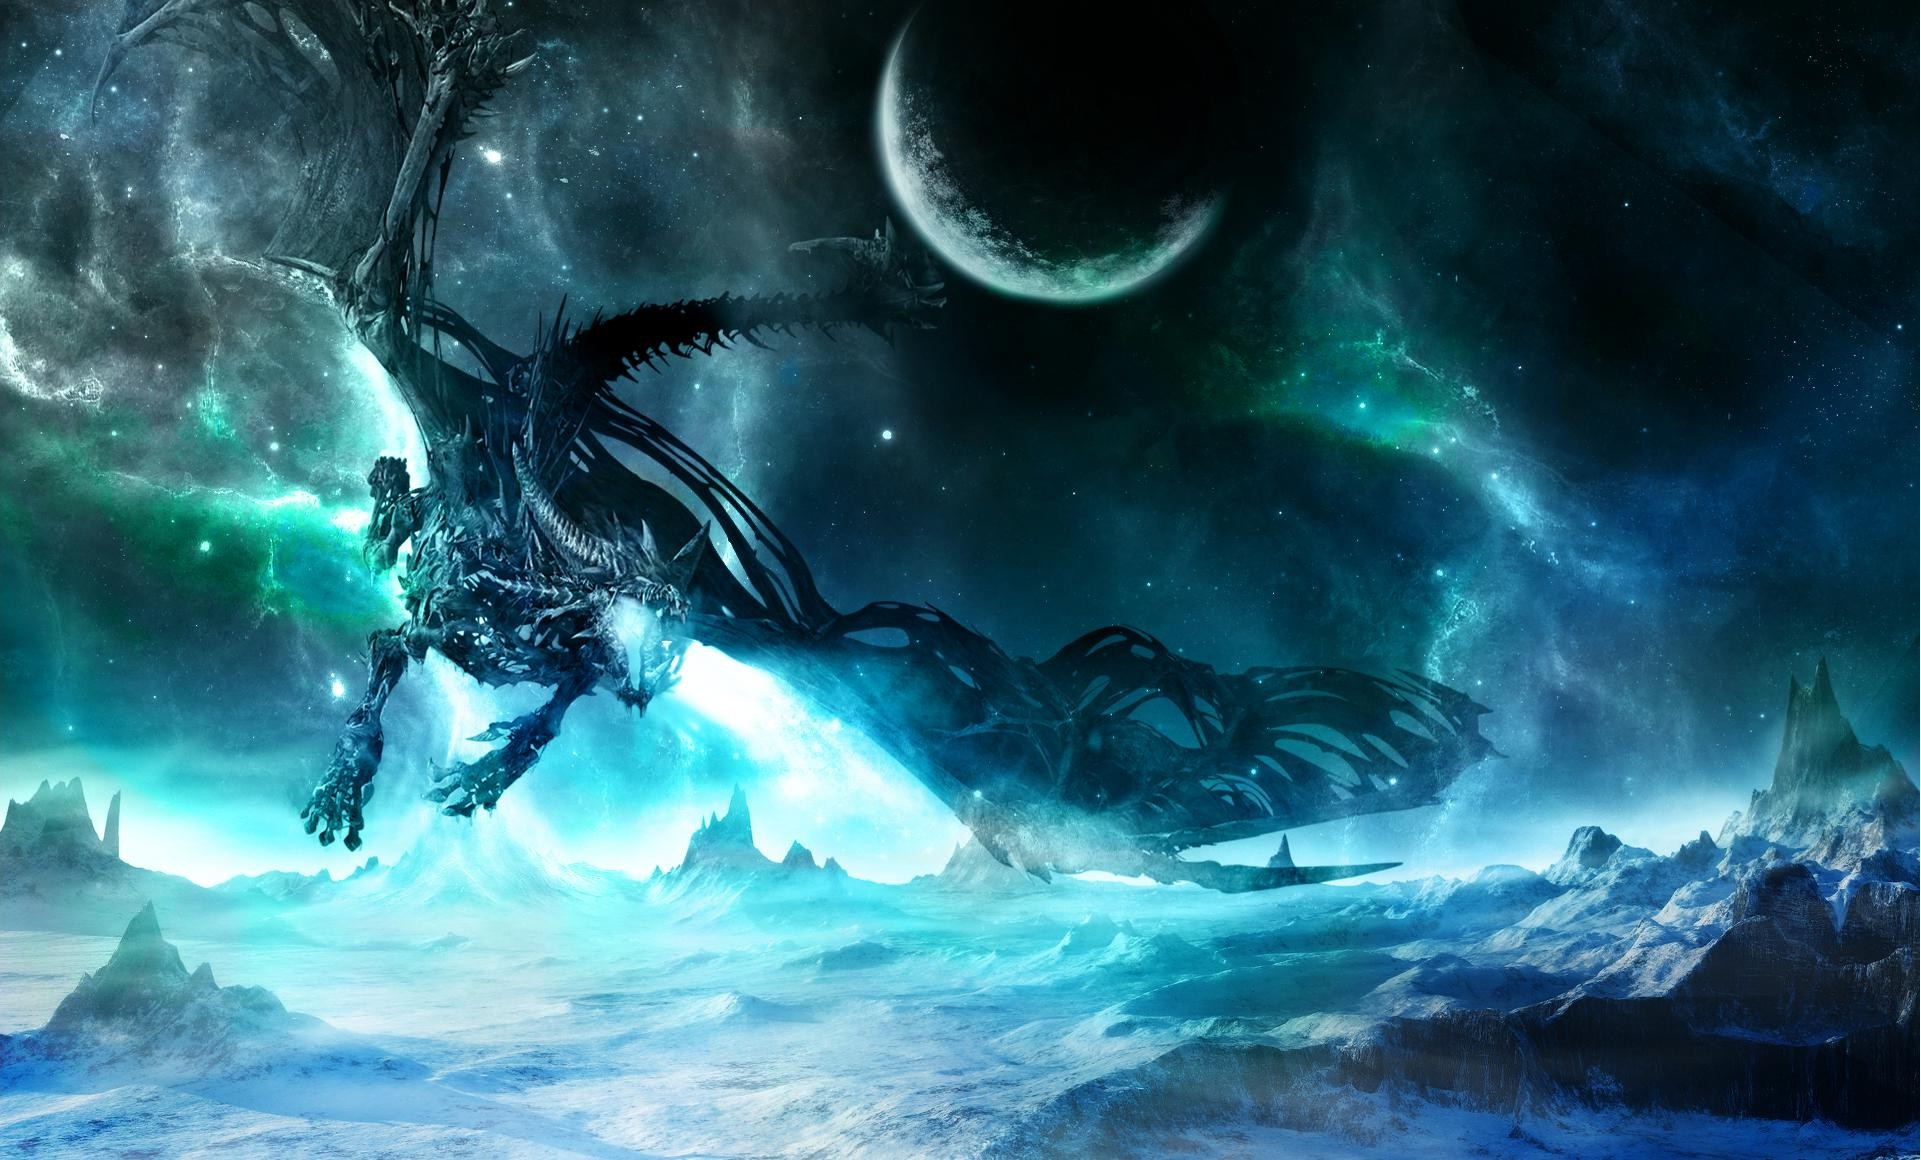 Free Download Space Dragon Wallpapers Hd Desktop And Mobile